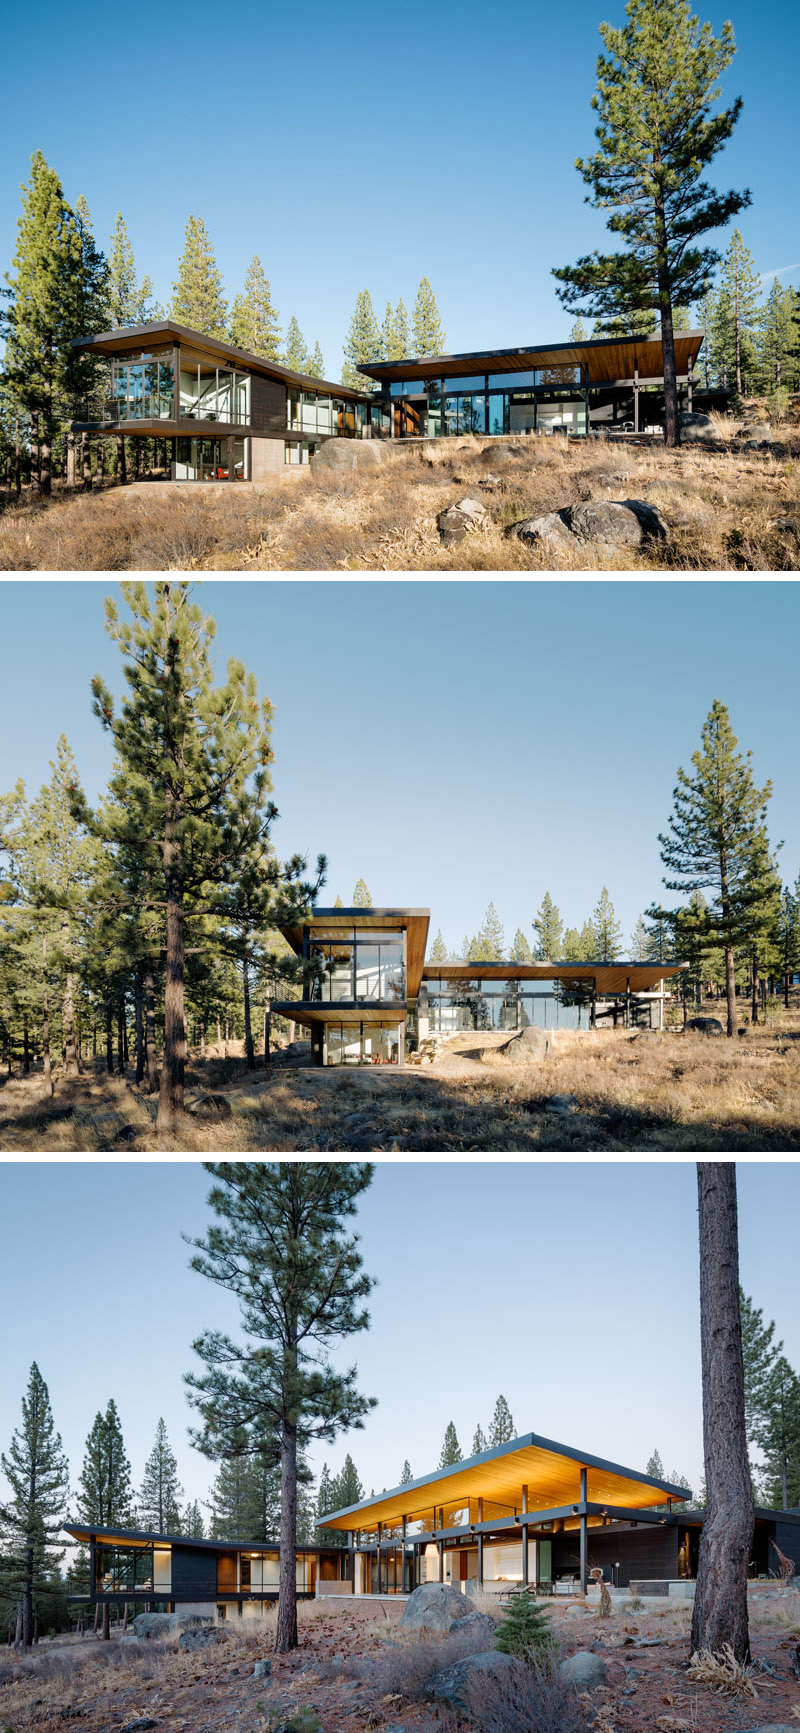 This modern house features large windows and a wood upward sloped roof with hidden lighting, allowing for breathtaking views of the surrounding landscape.